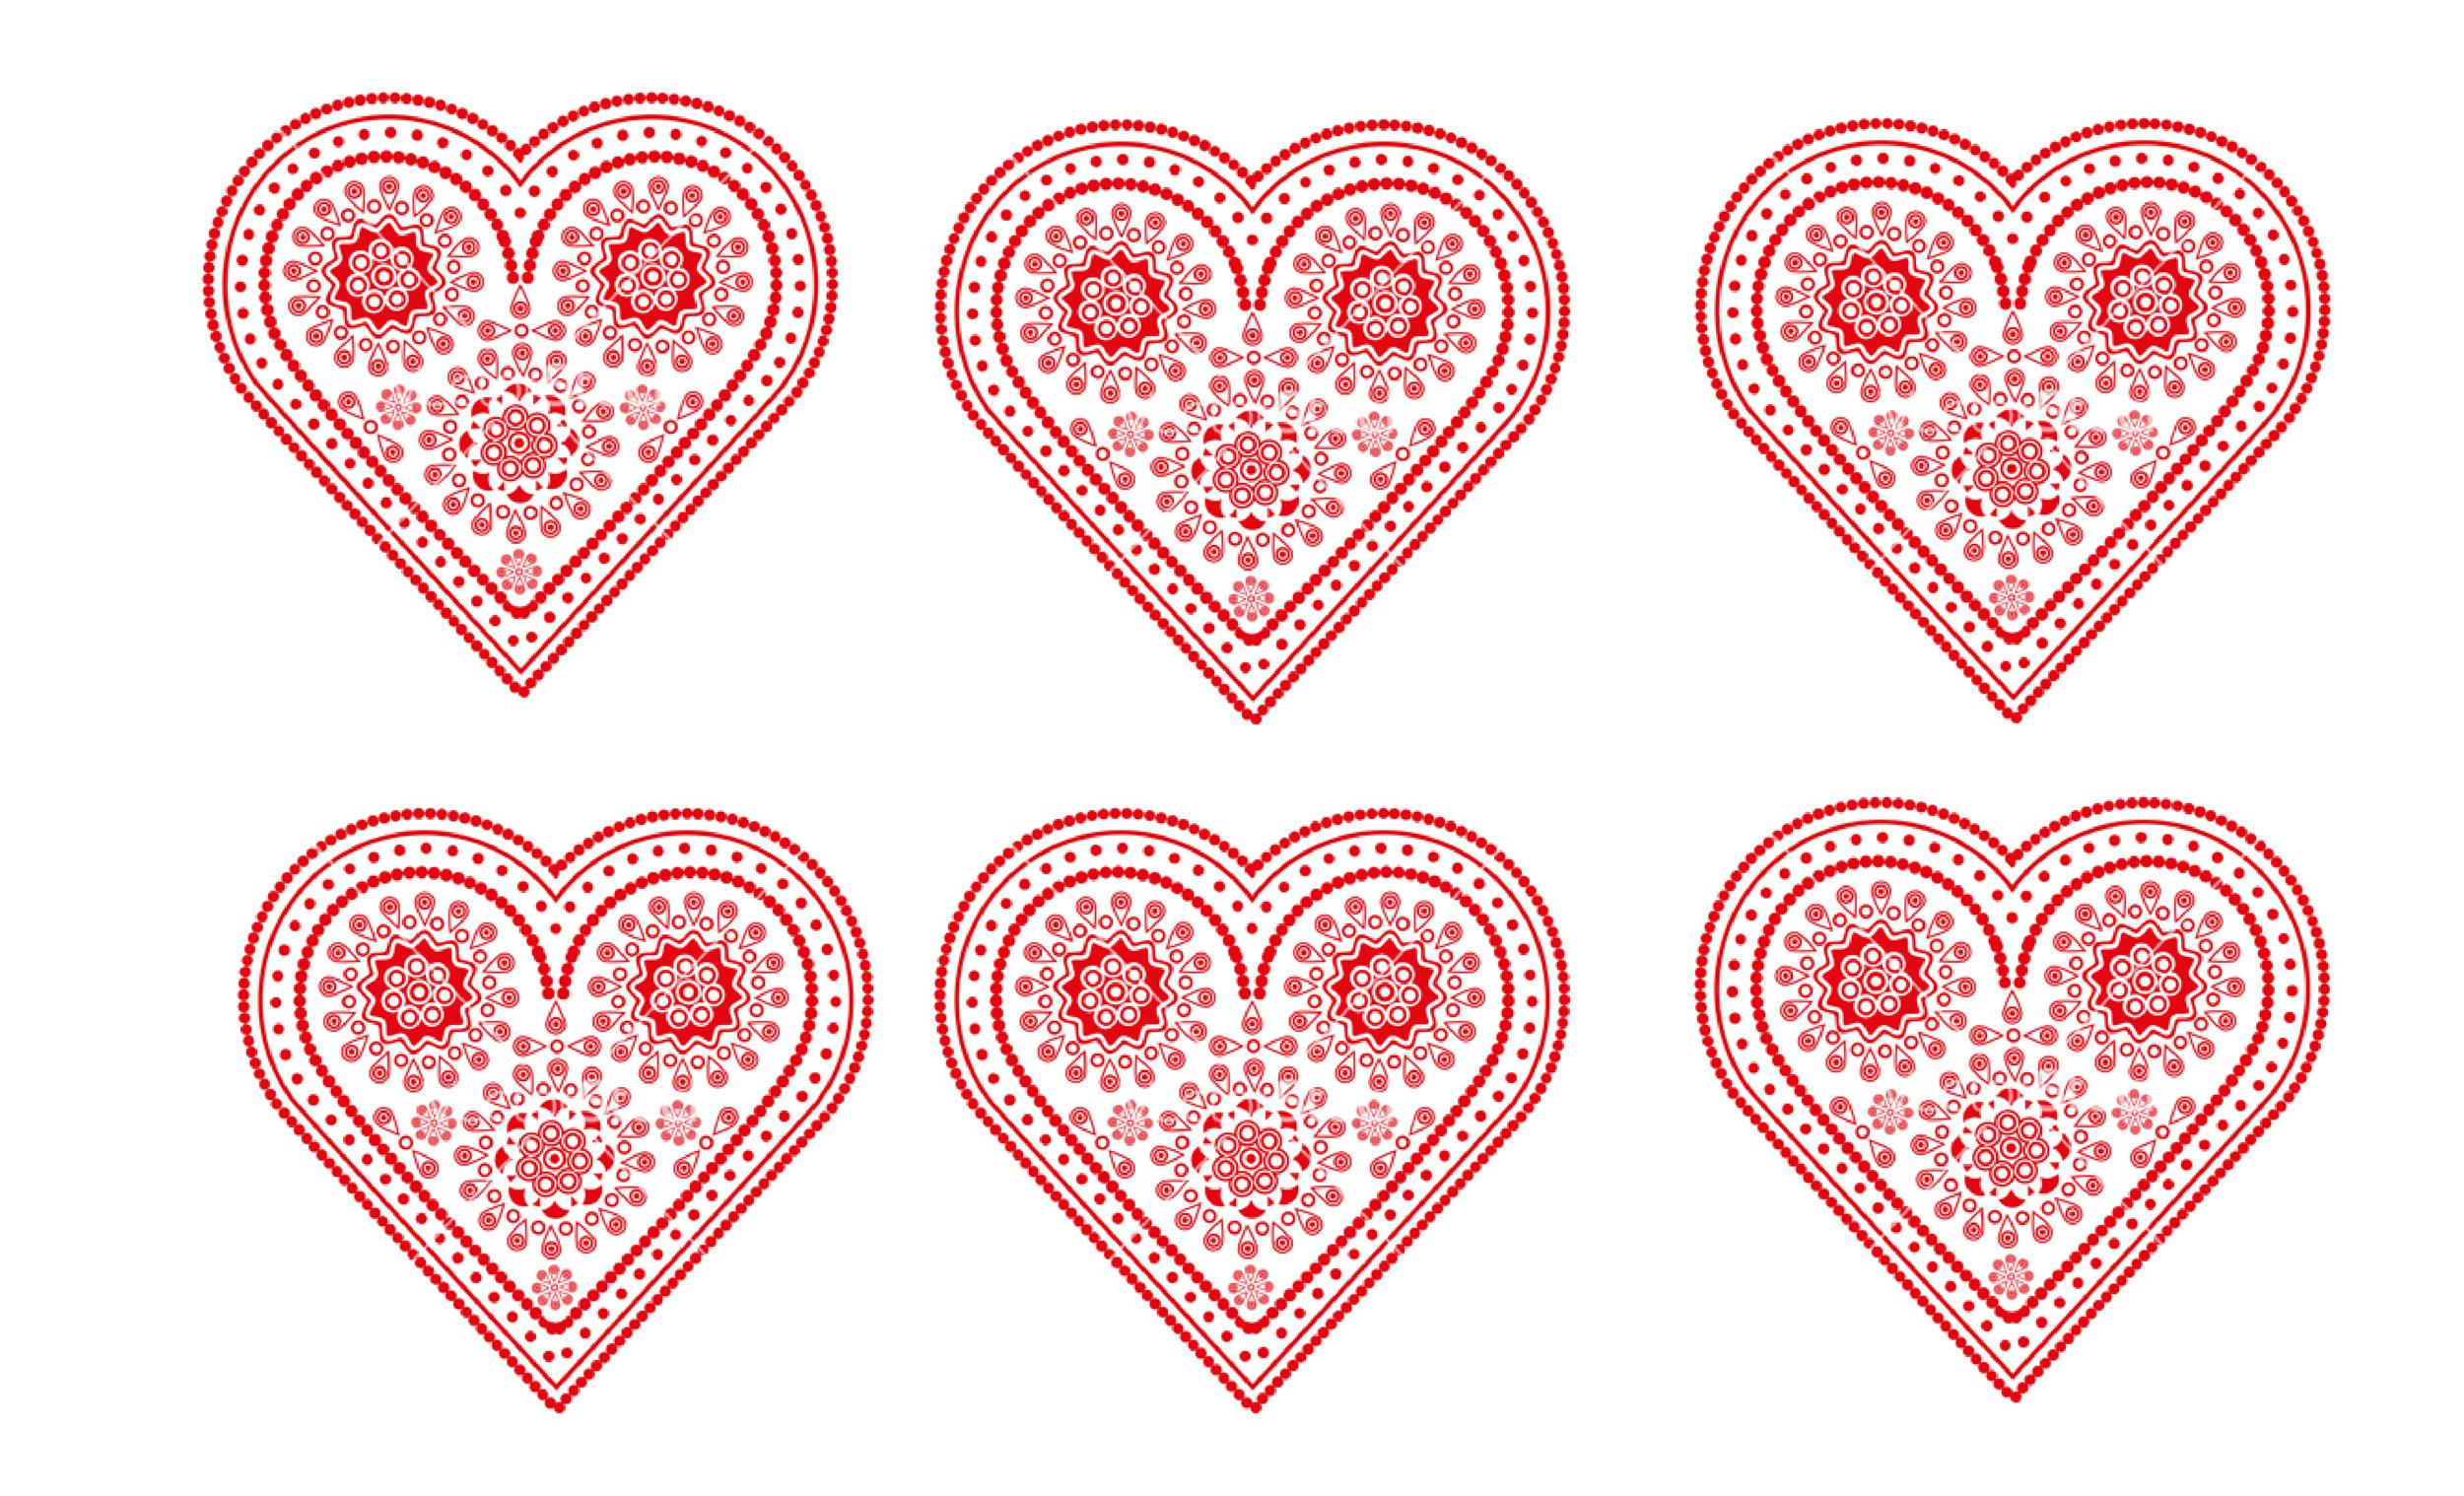 40 Printable Heart Templates Amp 15 Usage Examples